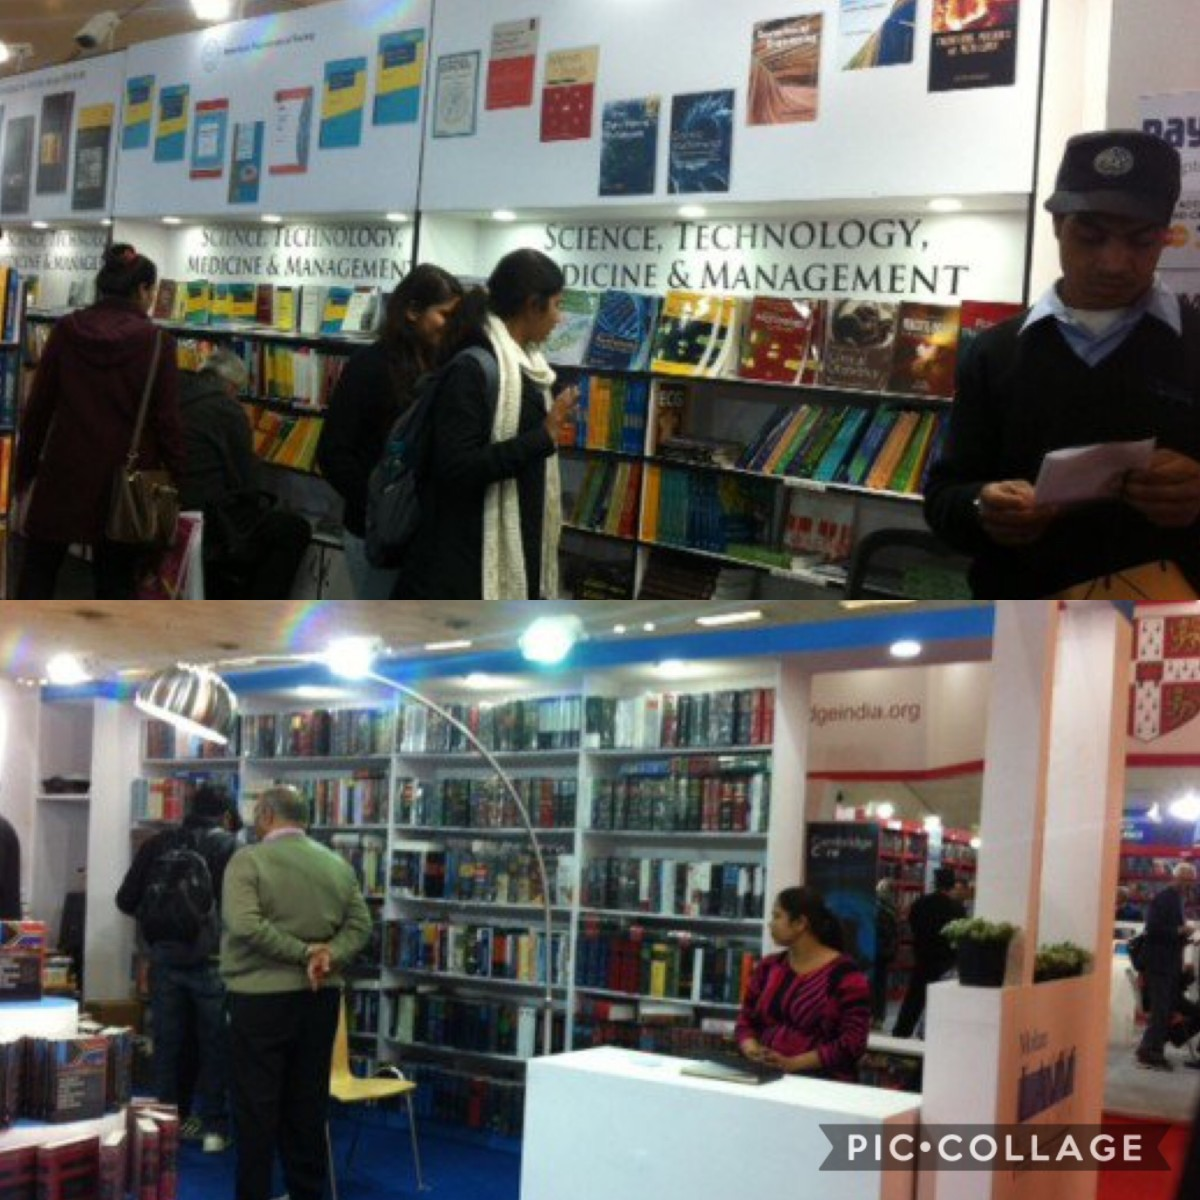 Science, Literature, children's books, fiction, philosophy—You can find the latest books published on these subjects in the World Book Fair organised at Pragati Maidan, New Delhi.